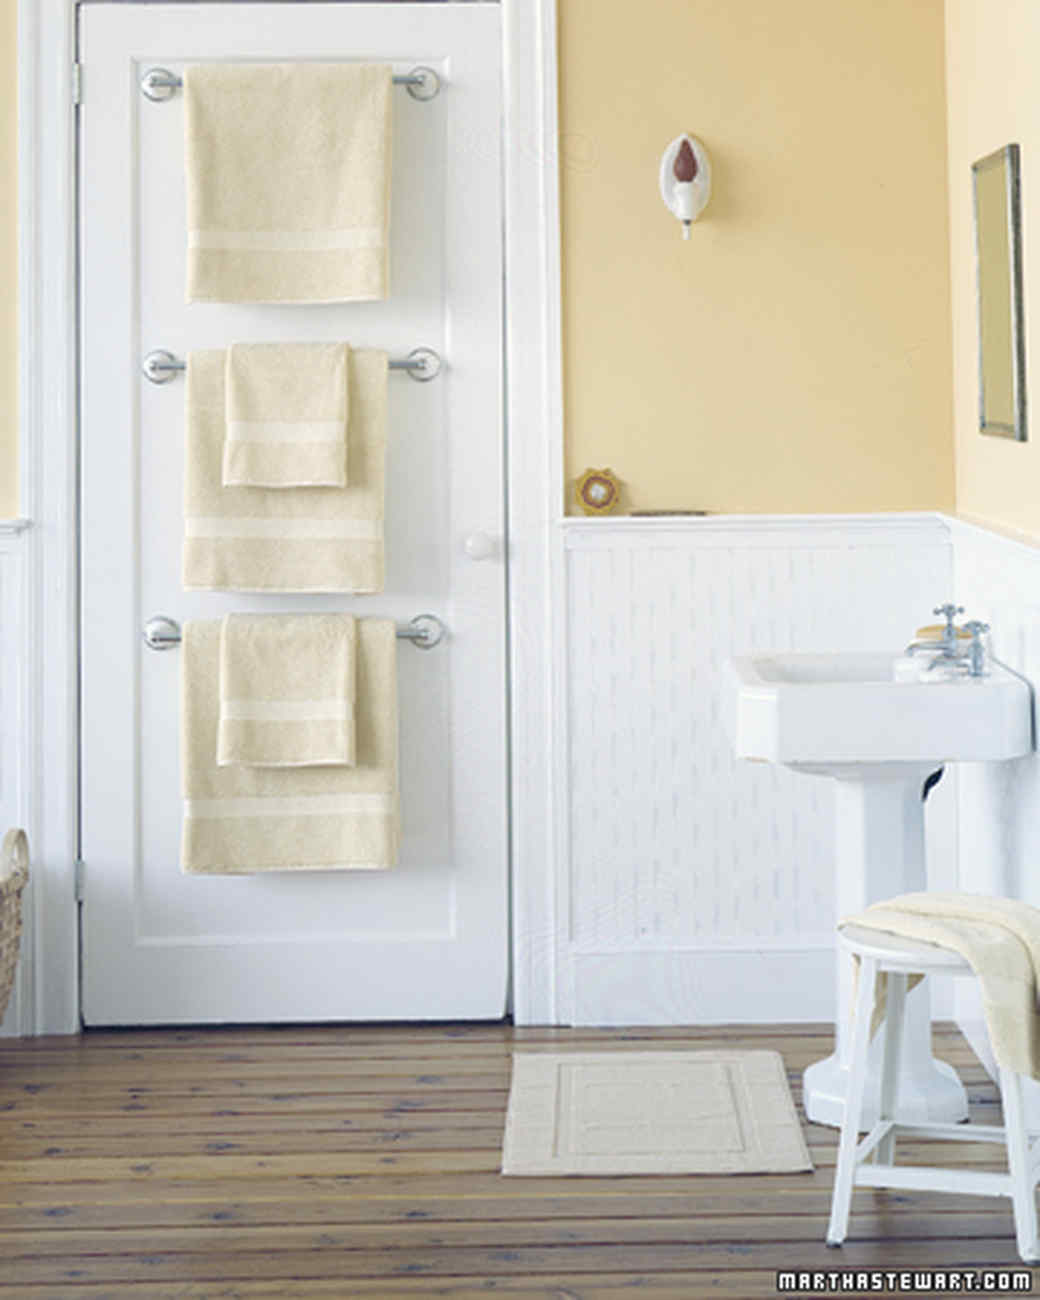 Bathroom floor towels - Towel Bar Trio Bathrooms